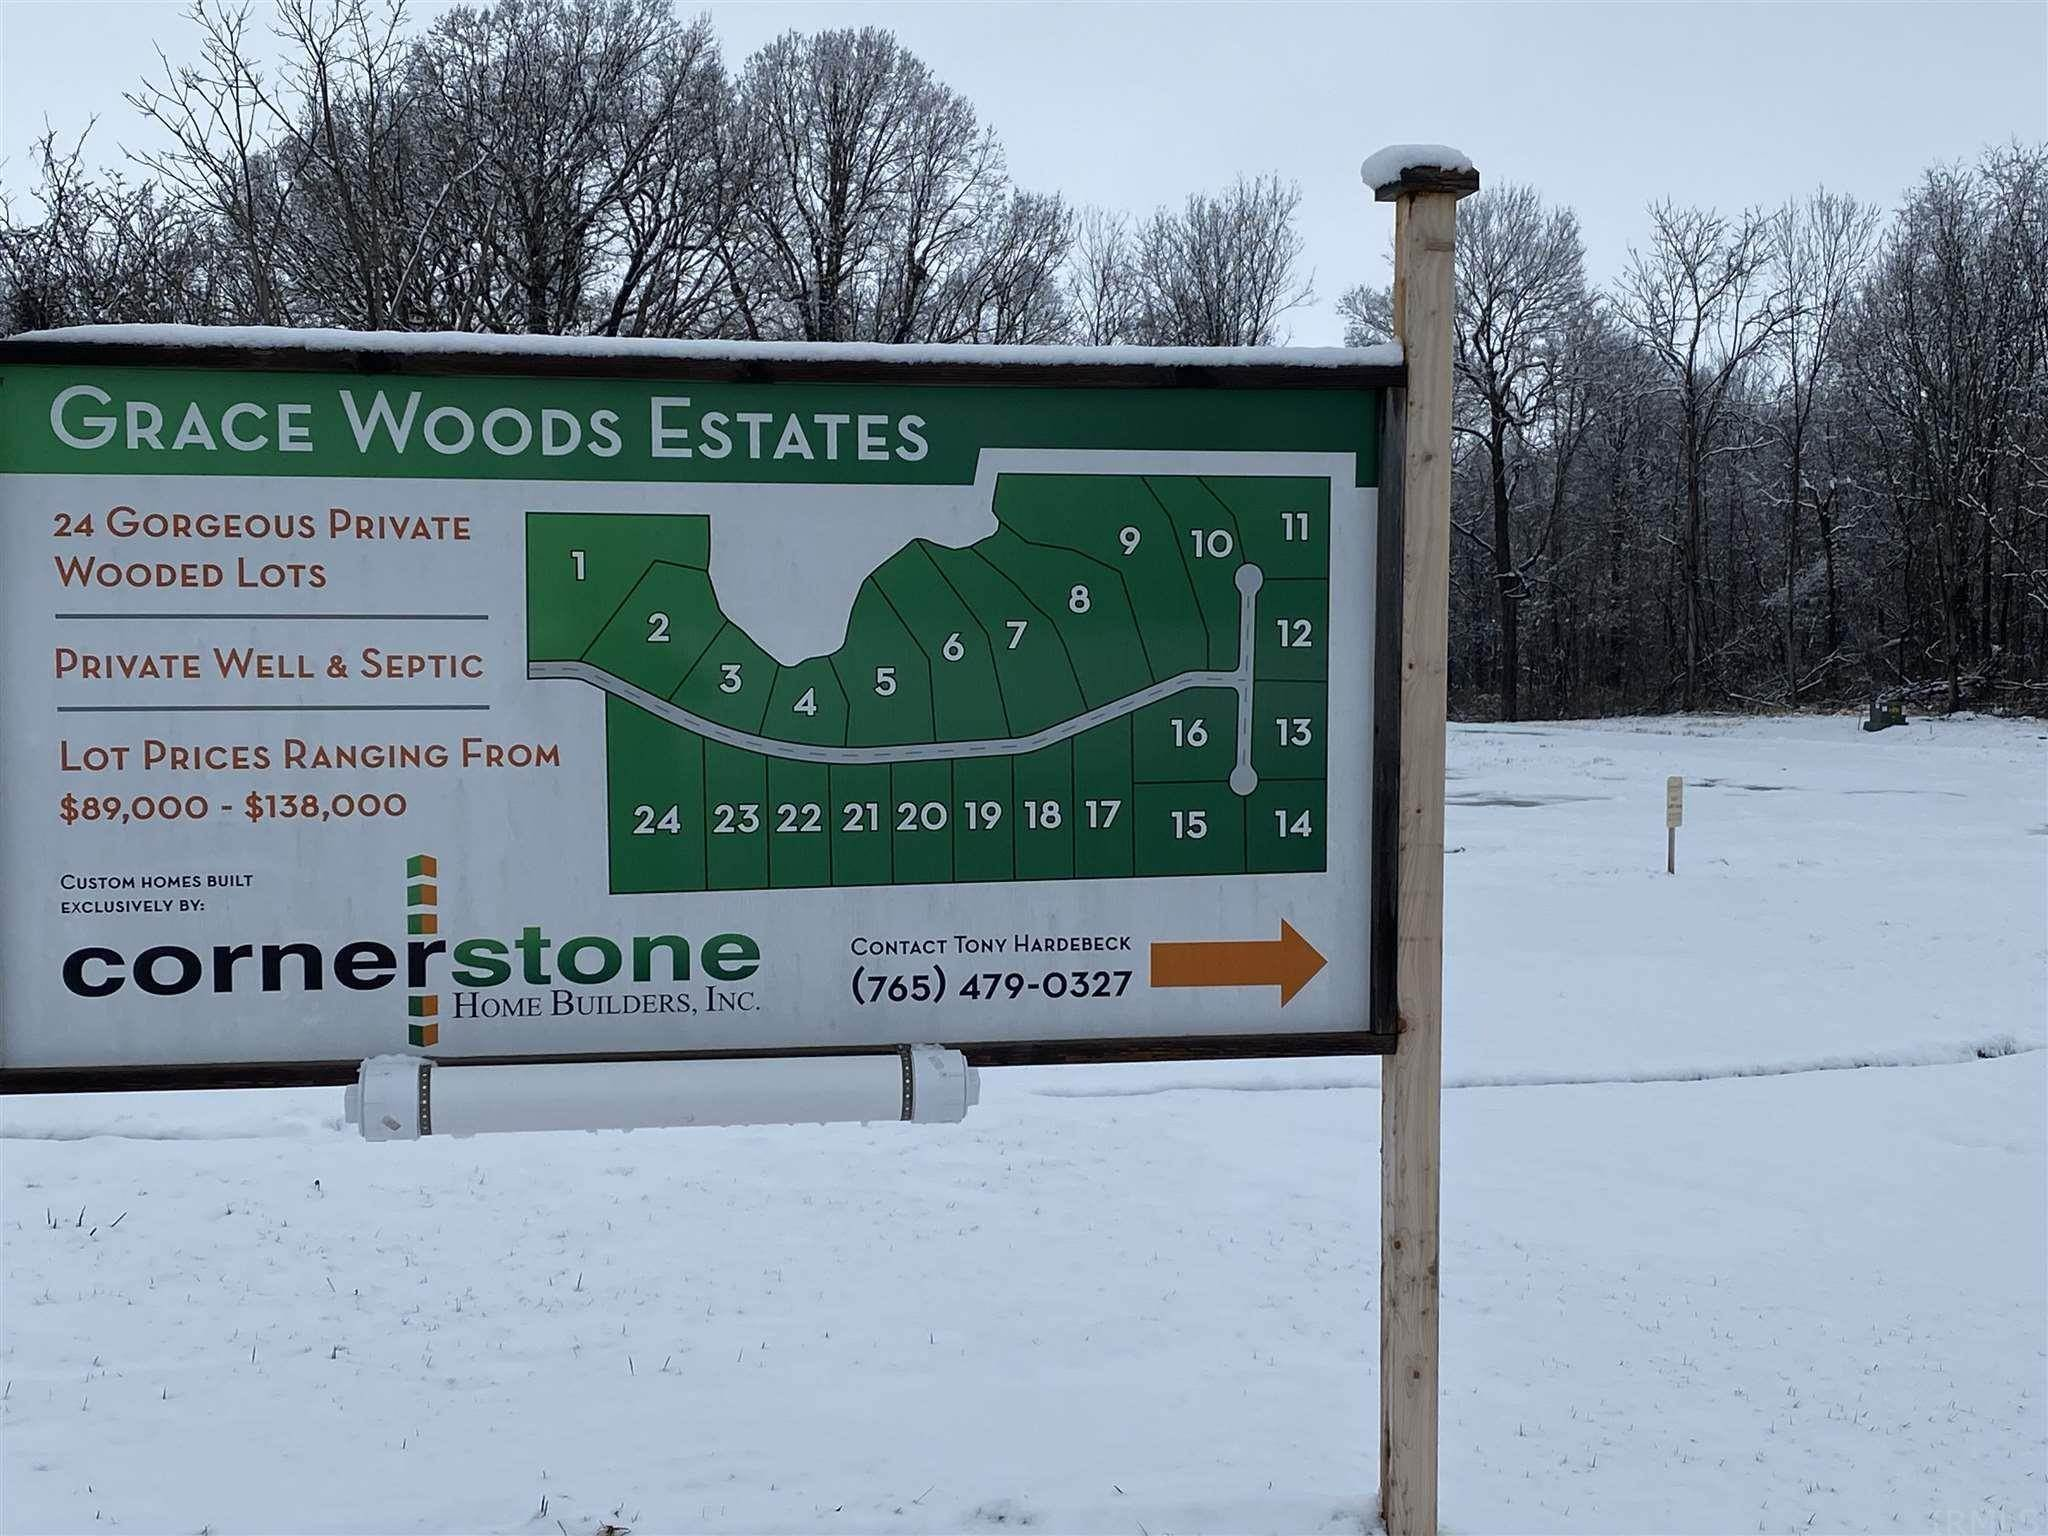 Residential Lots & Land for Sale at 1576 W Herring Way Battle Ground, Indiana 47920 United States